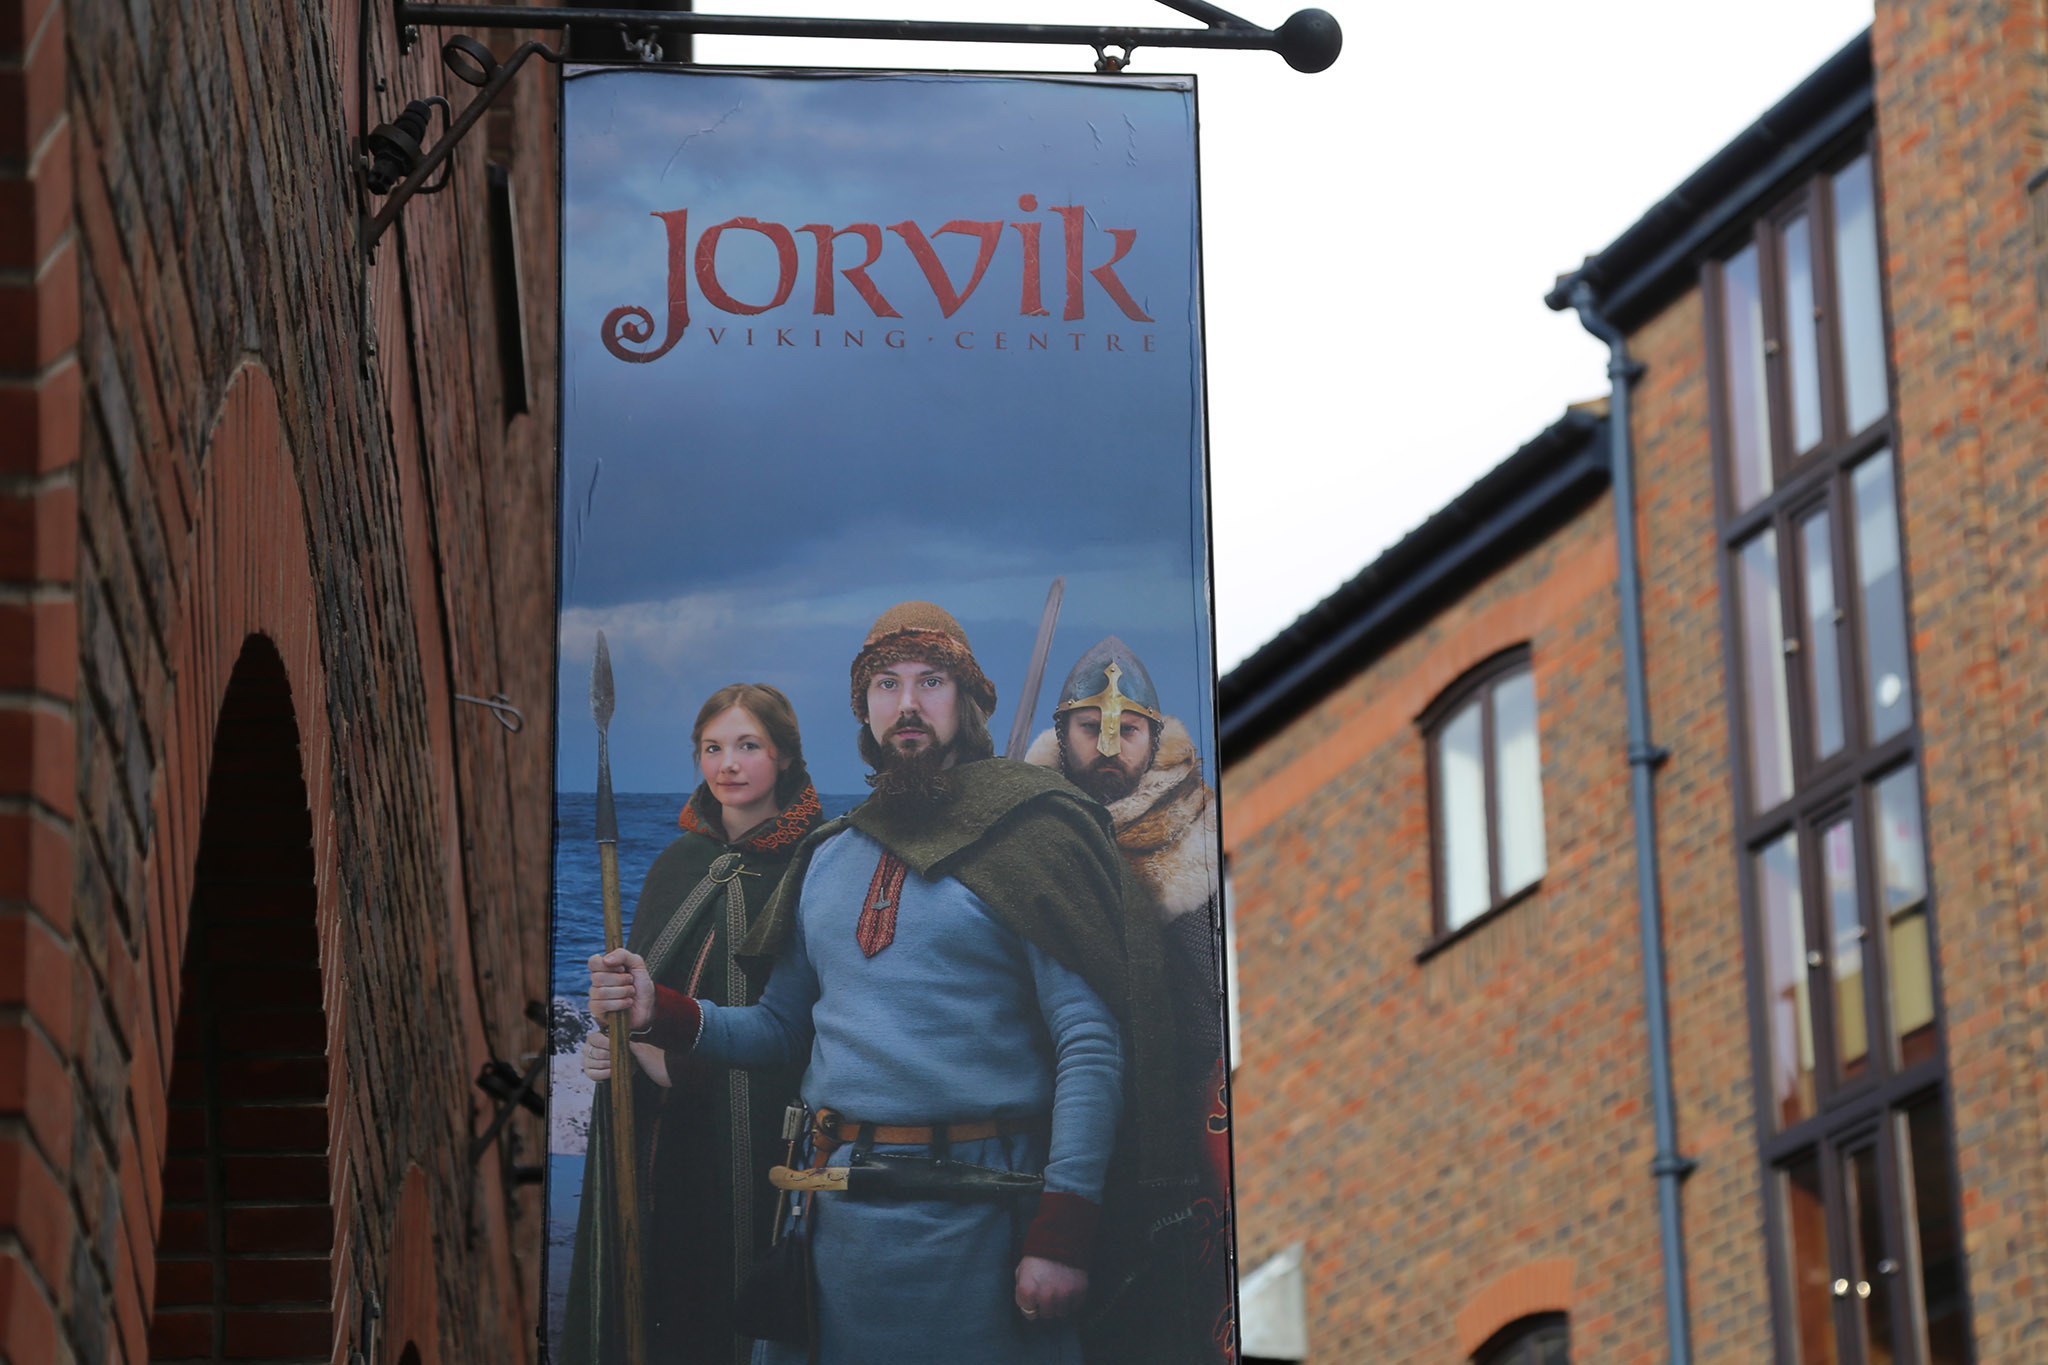 Jorvik Viking Centre, eitw